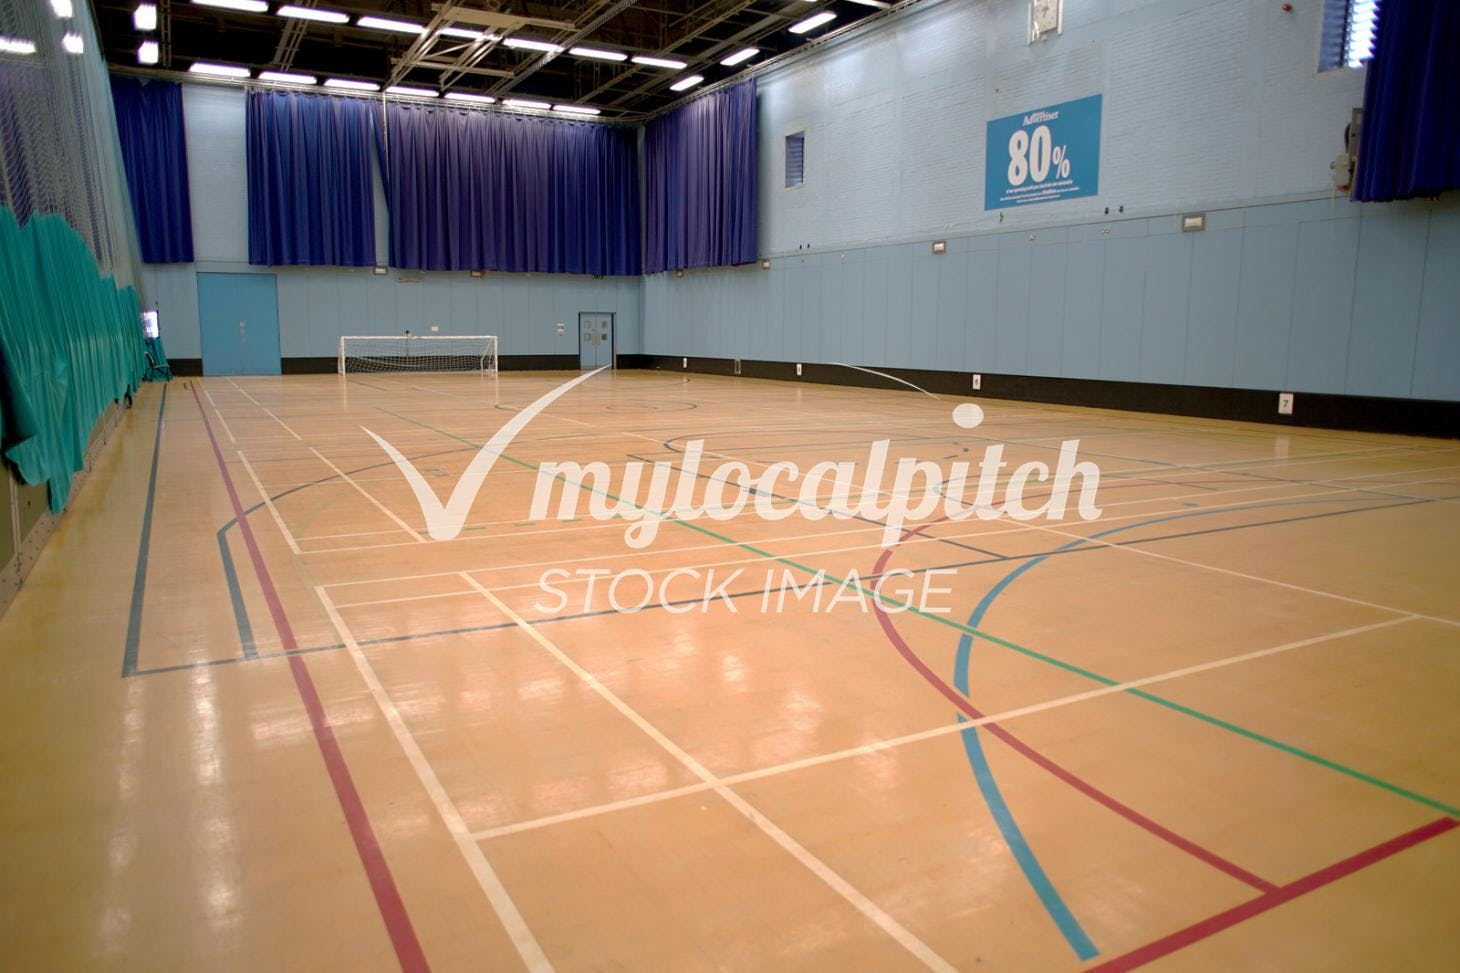 Edmonton Leisure Centre 5 a side | Indoor football pitch